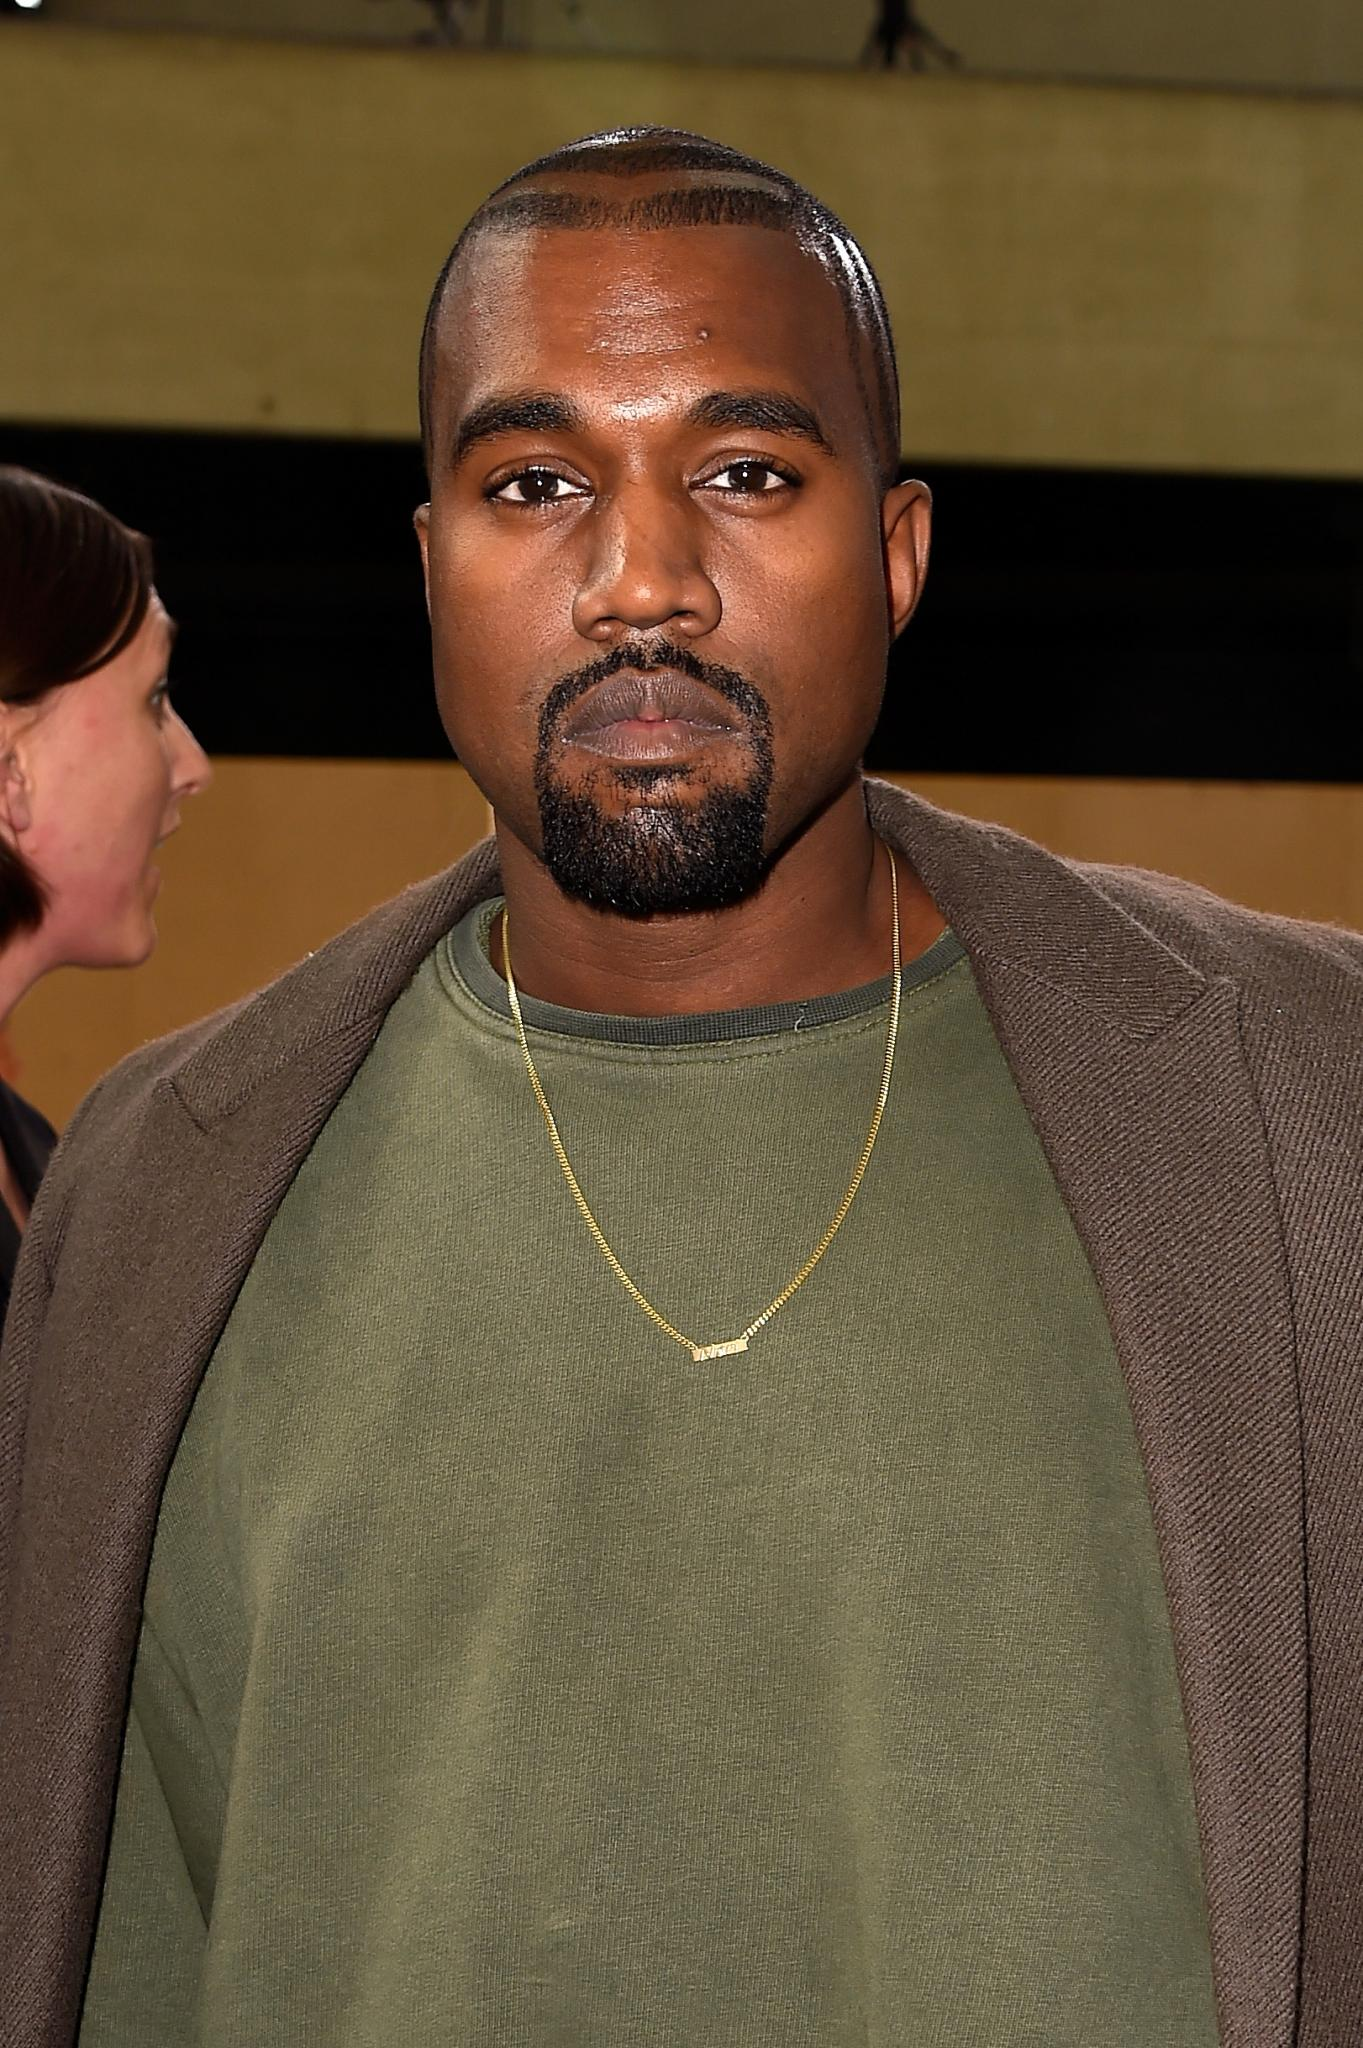 Kanye West's $600 Women's Sandals Sold Out in One Day